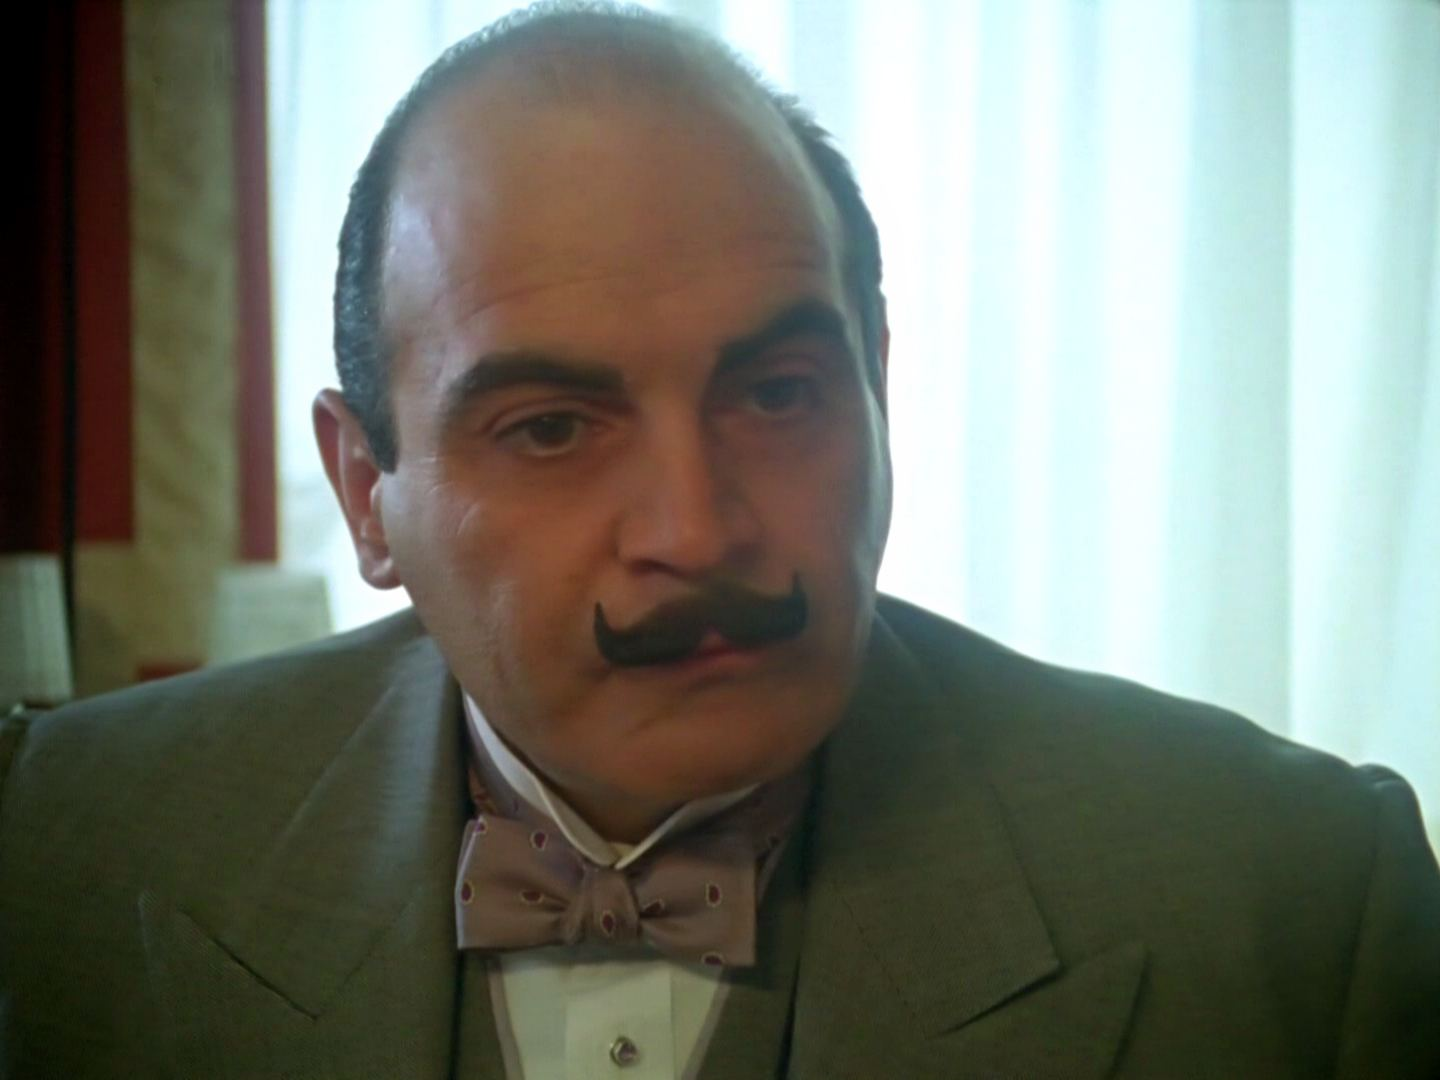 Screenshot from the 1991 'The Plymouth Express' episode of Poirot (1989-2013) (2) featuring David Suchet